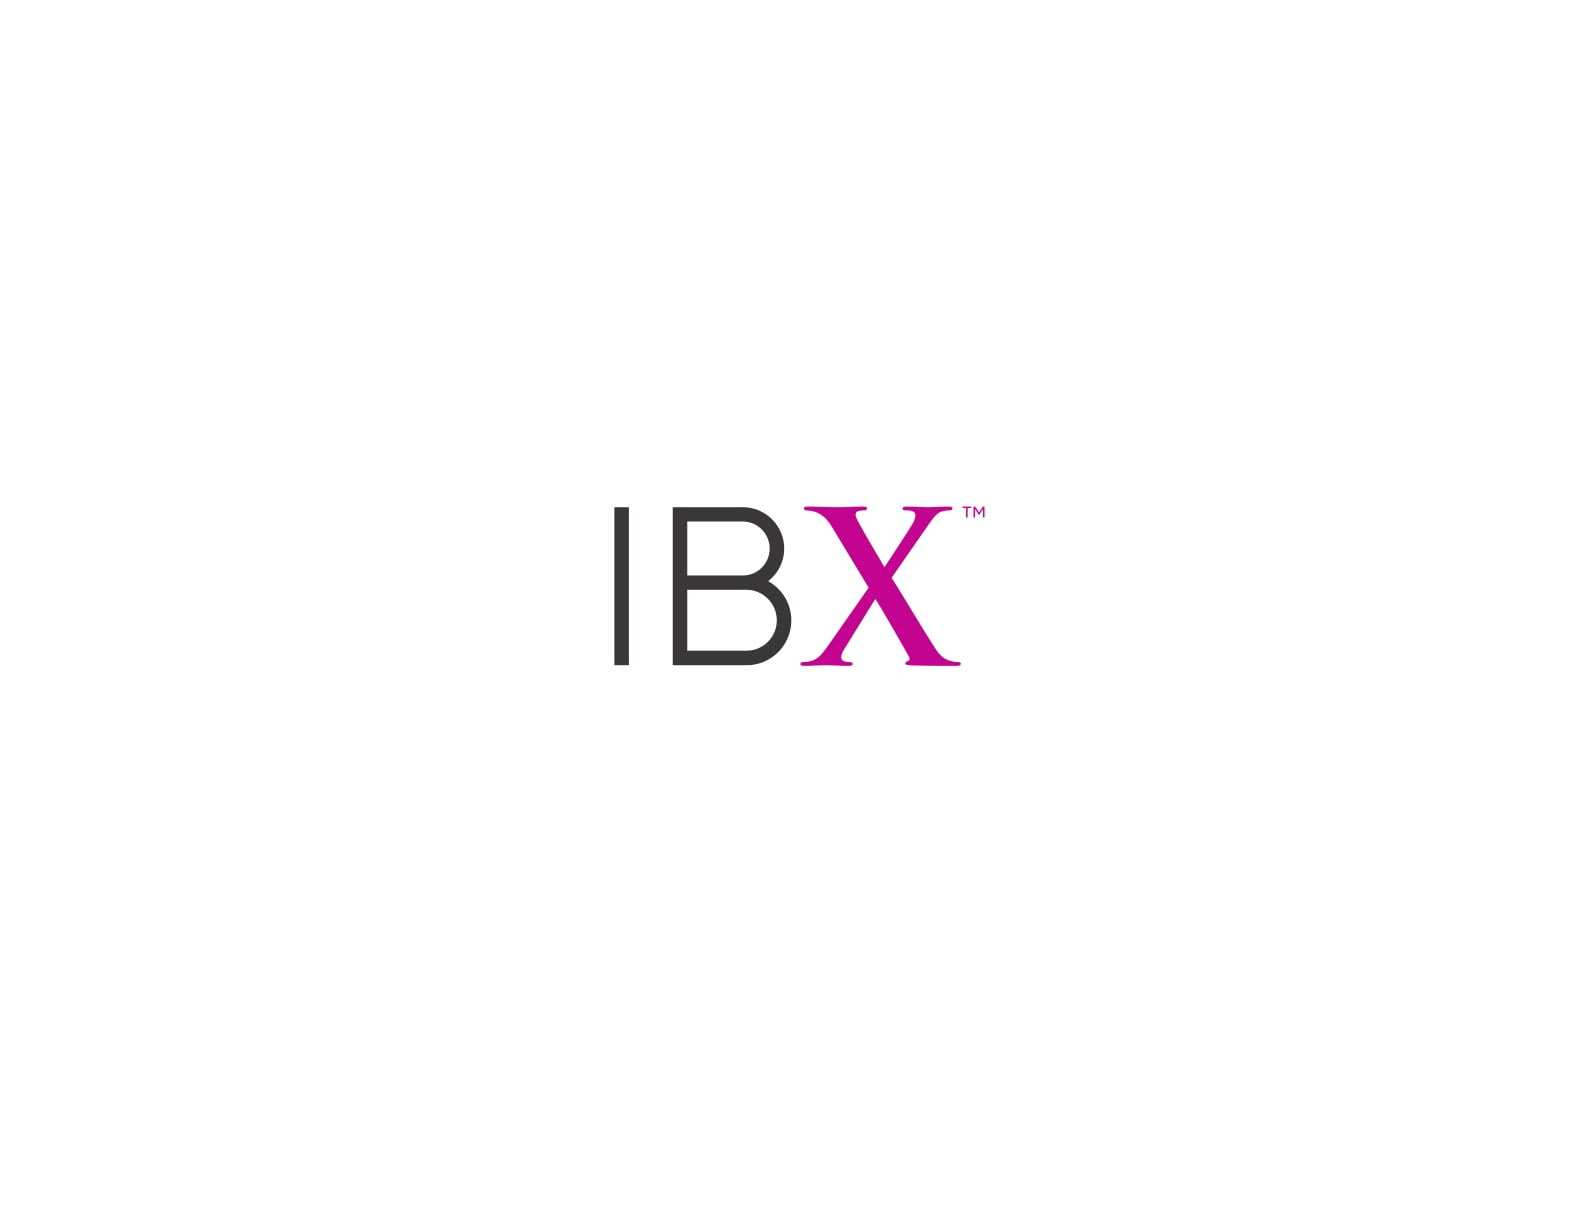 IBX_Only_Logo_blk